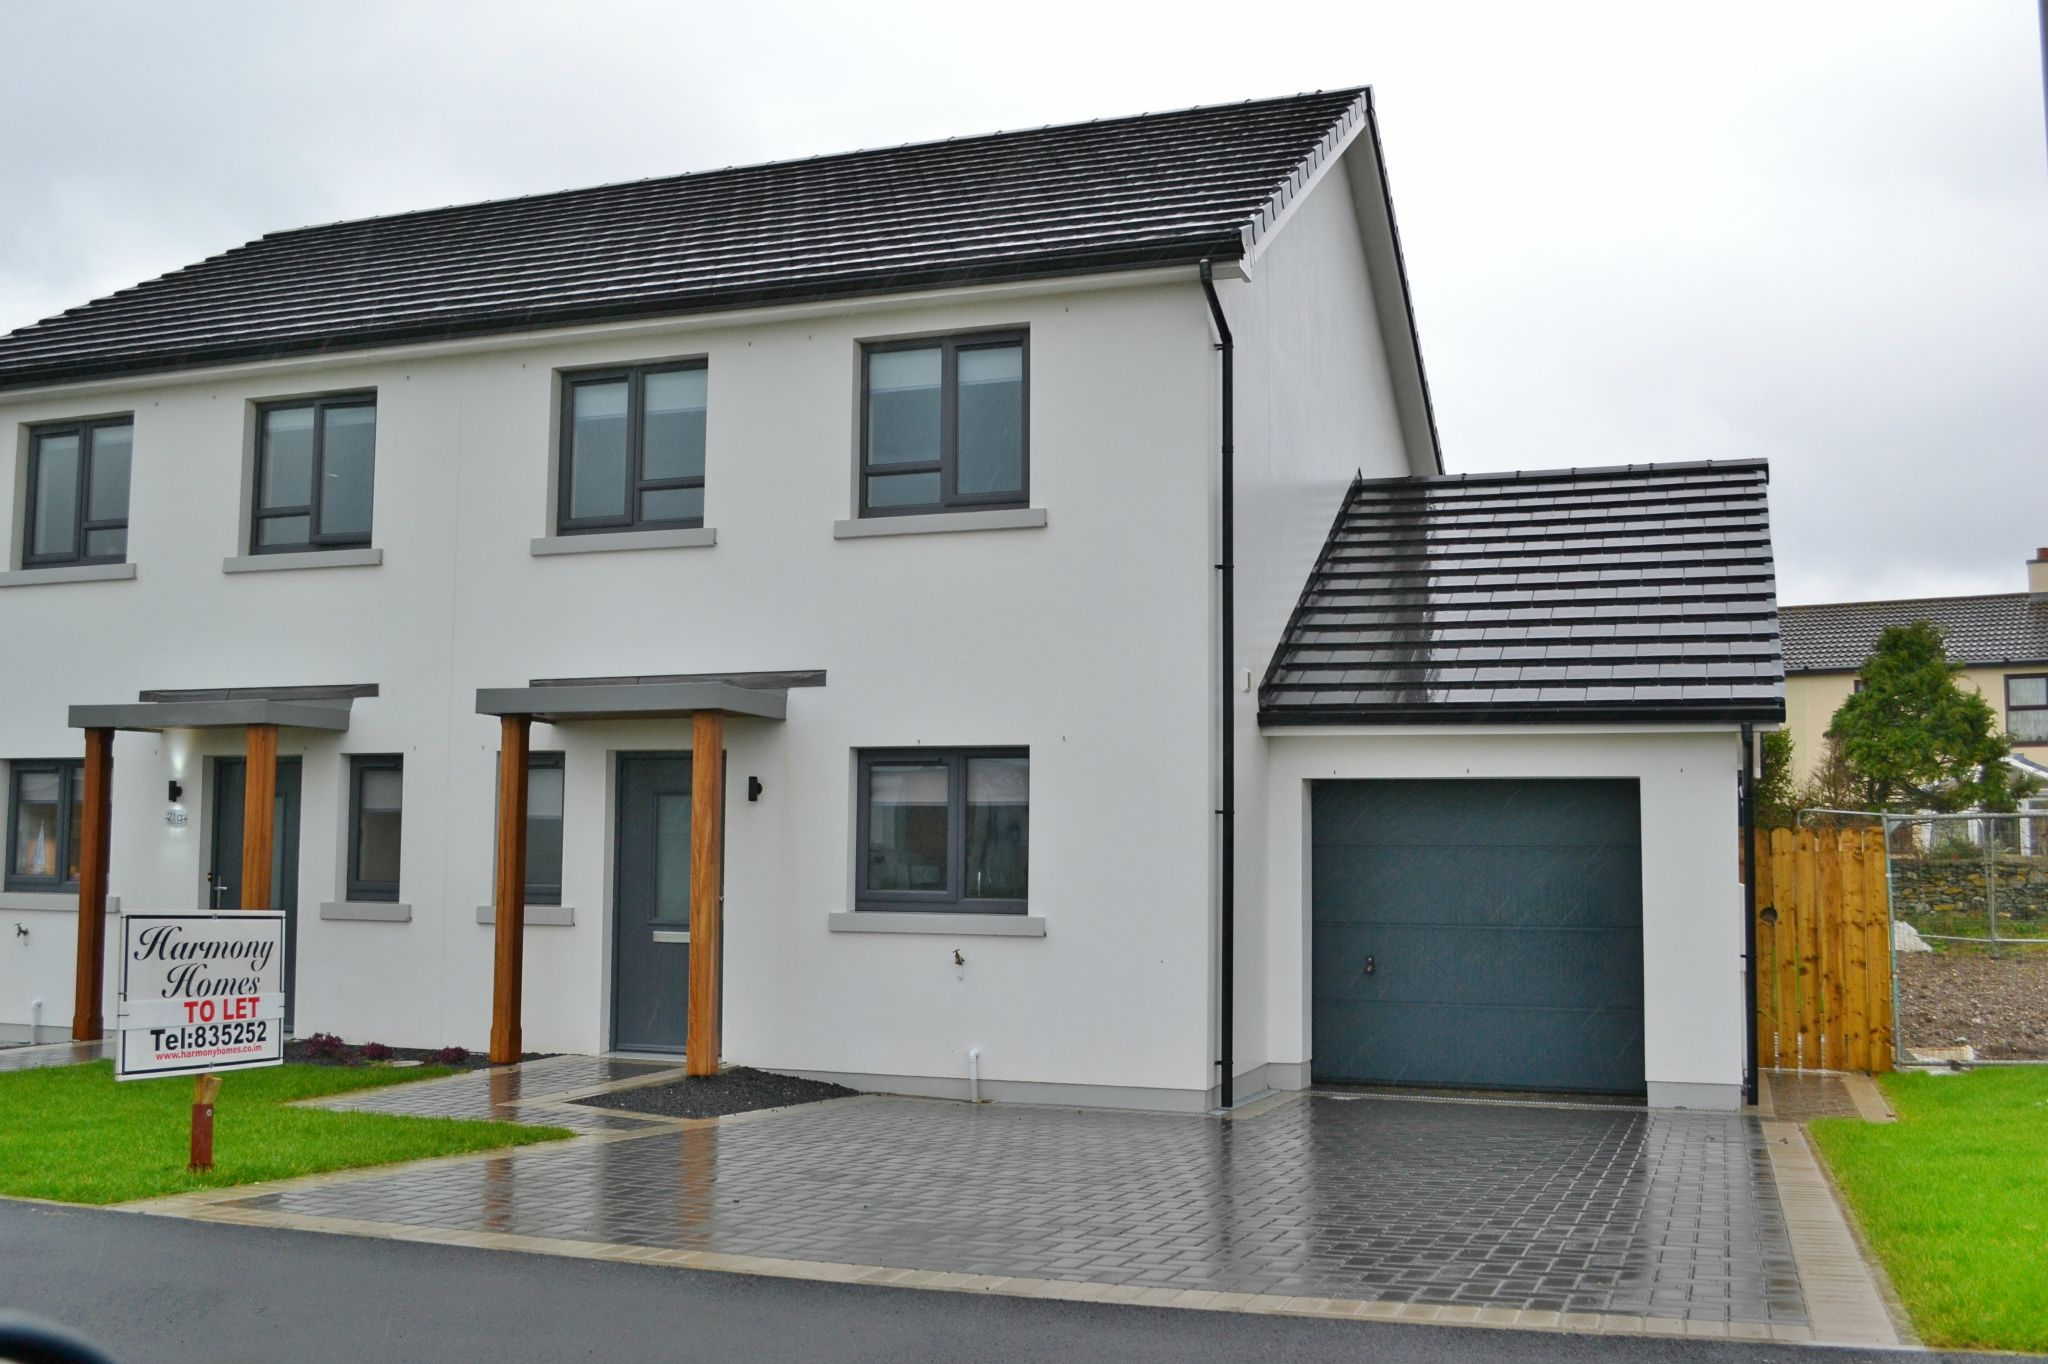 3 bedroom semi-detached house To Let in Port St Mary - Photograph 1